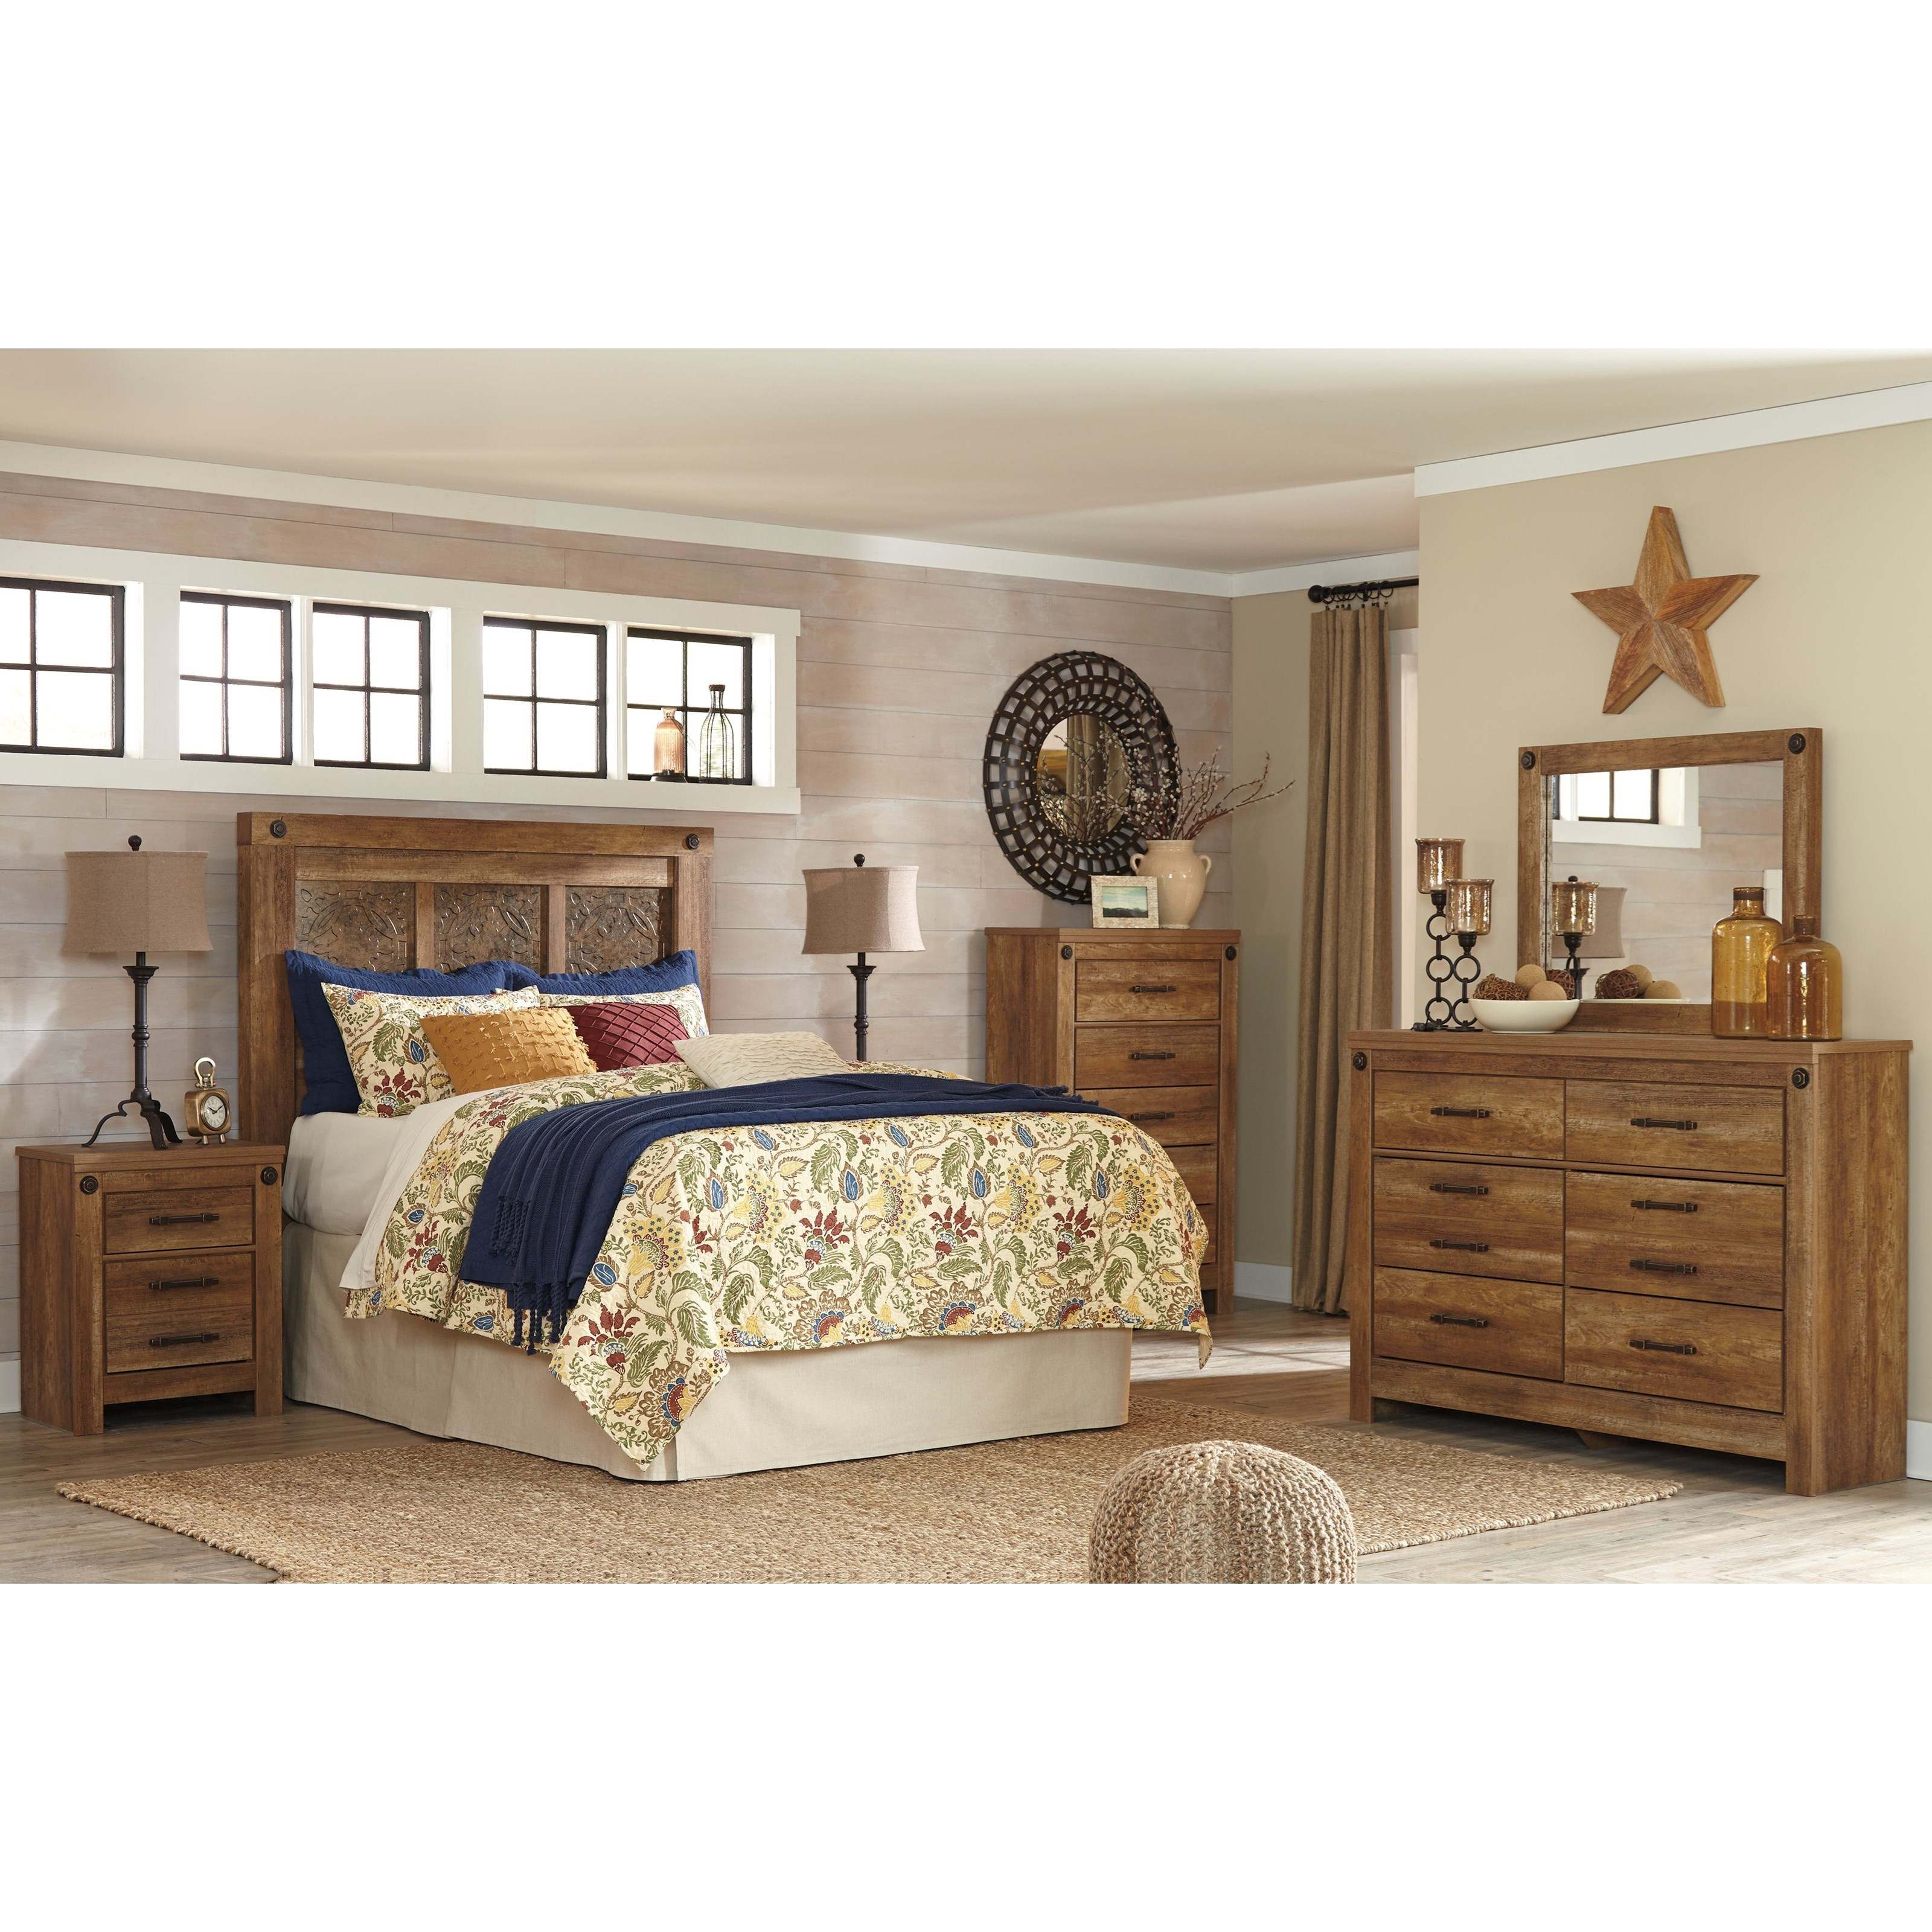 signature design by ashley furniture ladimier queen bedroom group sam 39 s appliance furniture. Black Bedroom Furniture Sets. Home Design Ideas